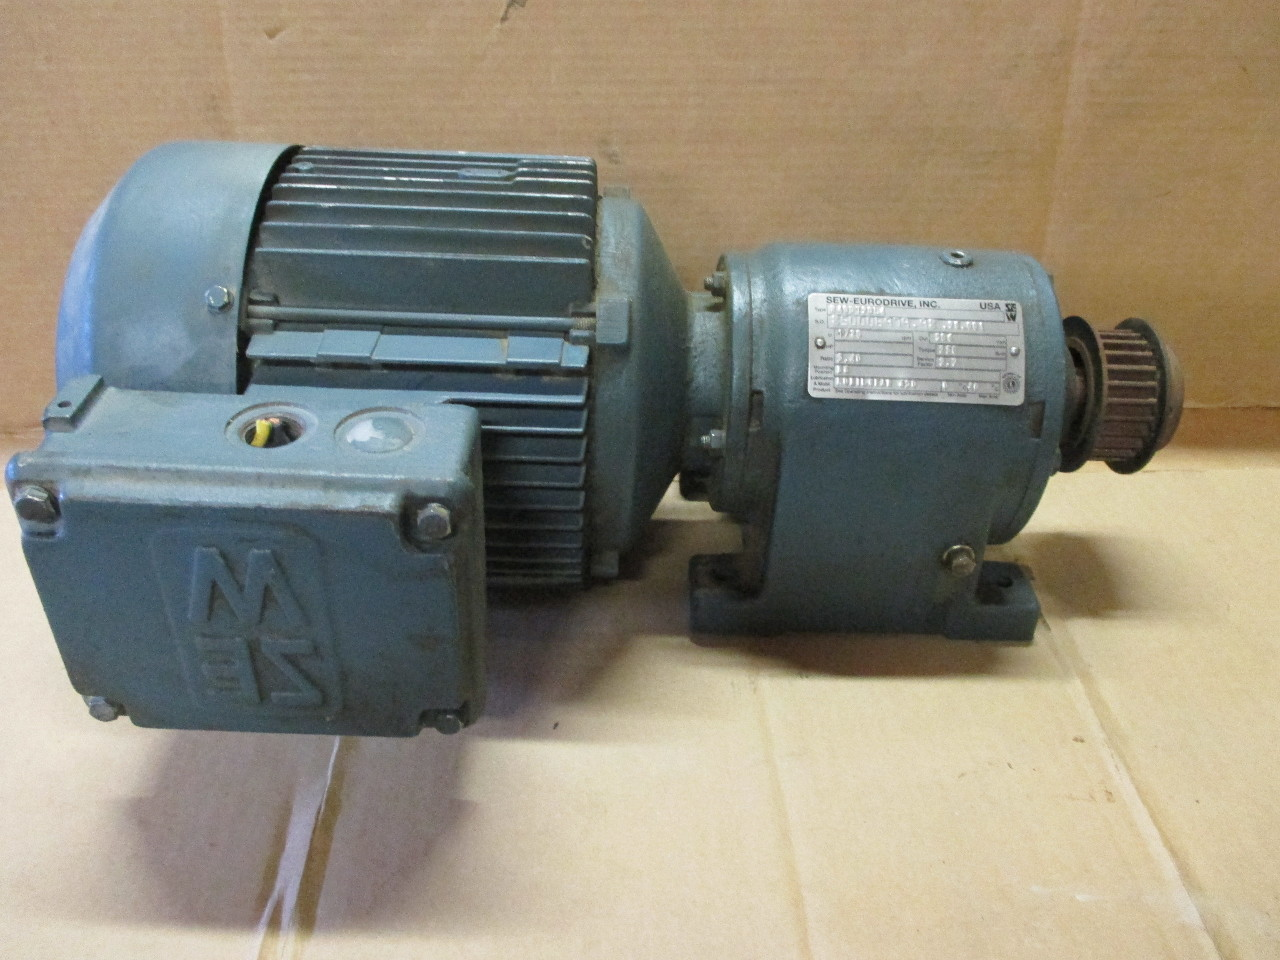 Sew Eurodrive Motor Dft90l4 2hp With Gear Reducer